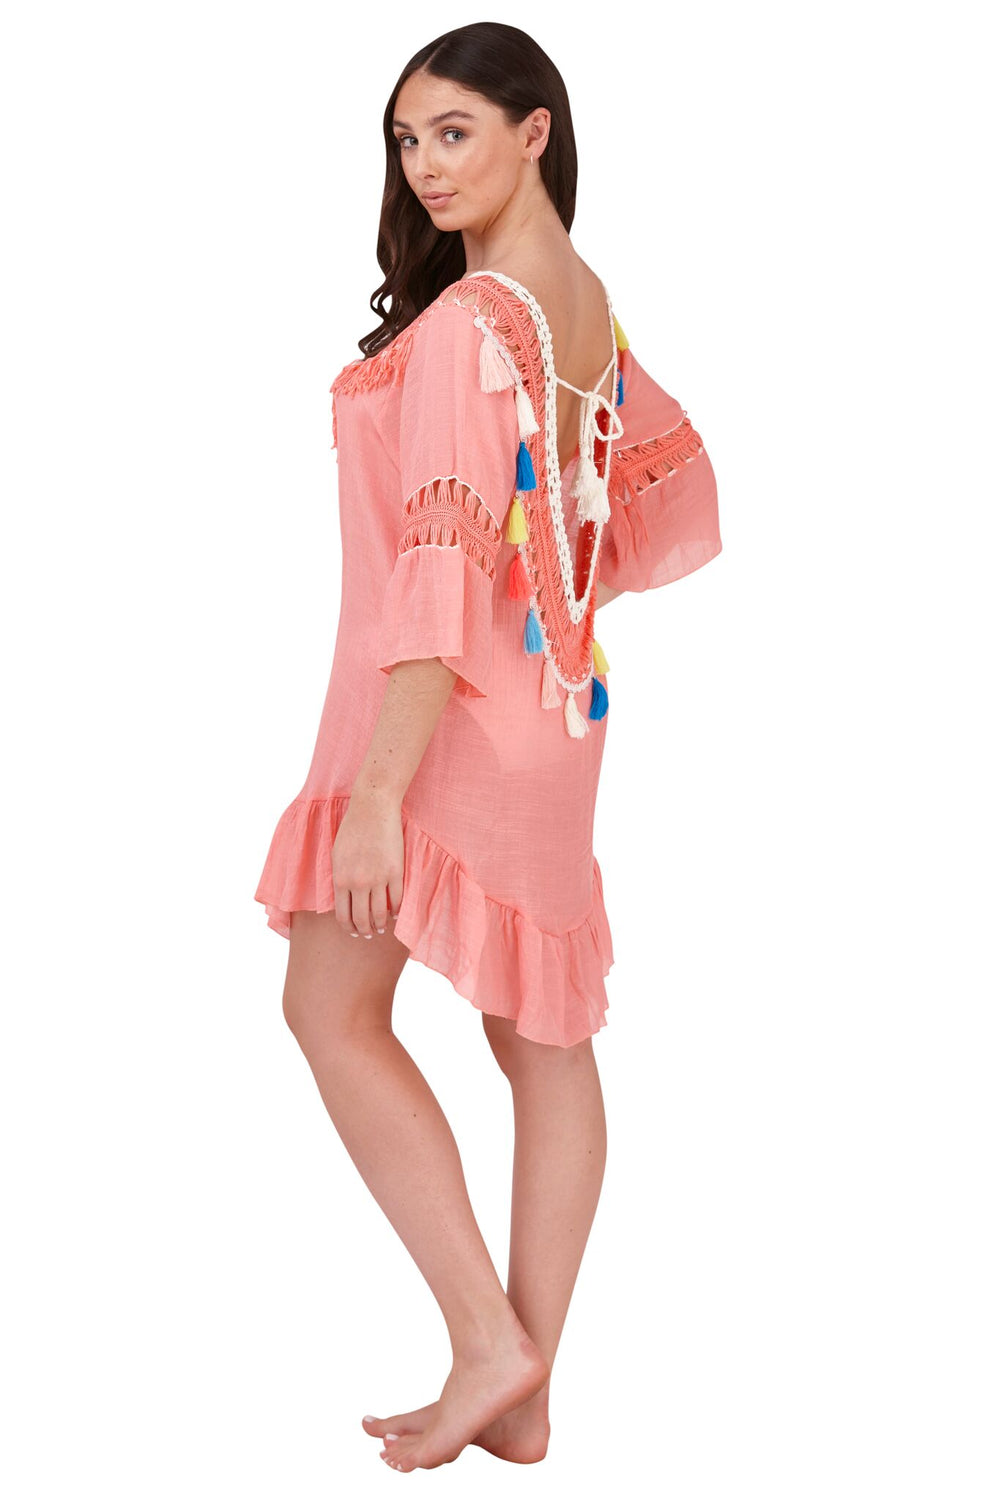 South Beach - Boutique Peach Crochet Tassel Beach Dress - SB0003-P-F